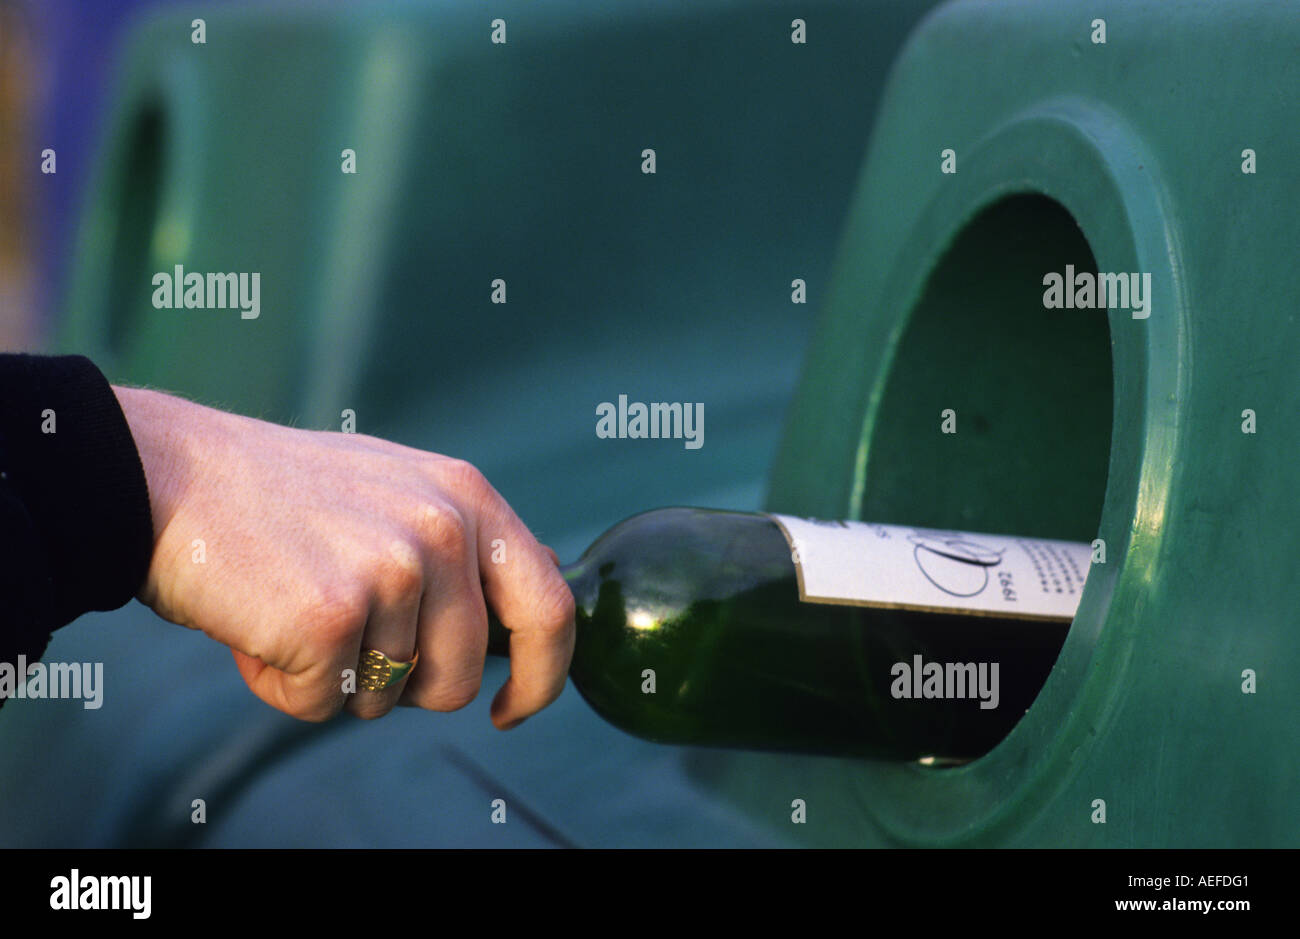 person throwing glass bottle into bottle bank recycling bin - Stock Image